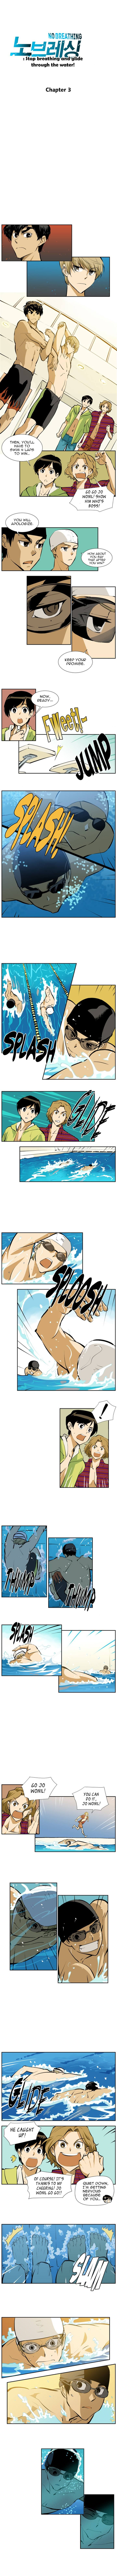 No Breathing 3 Page 1